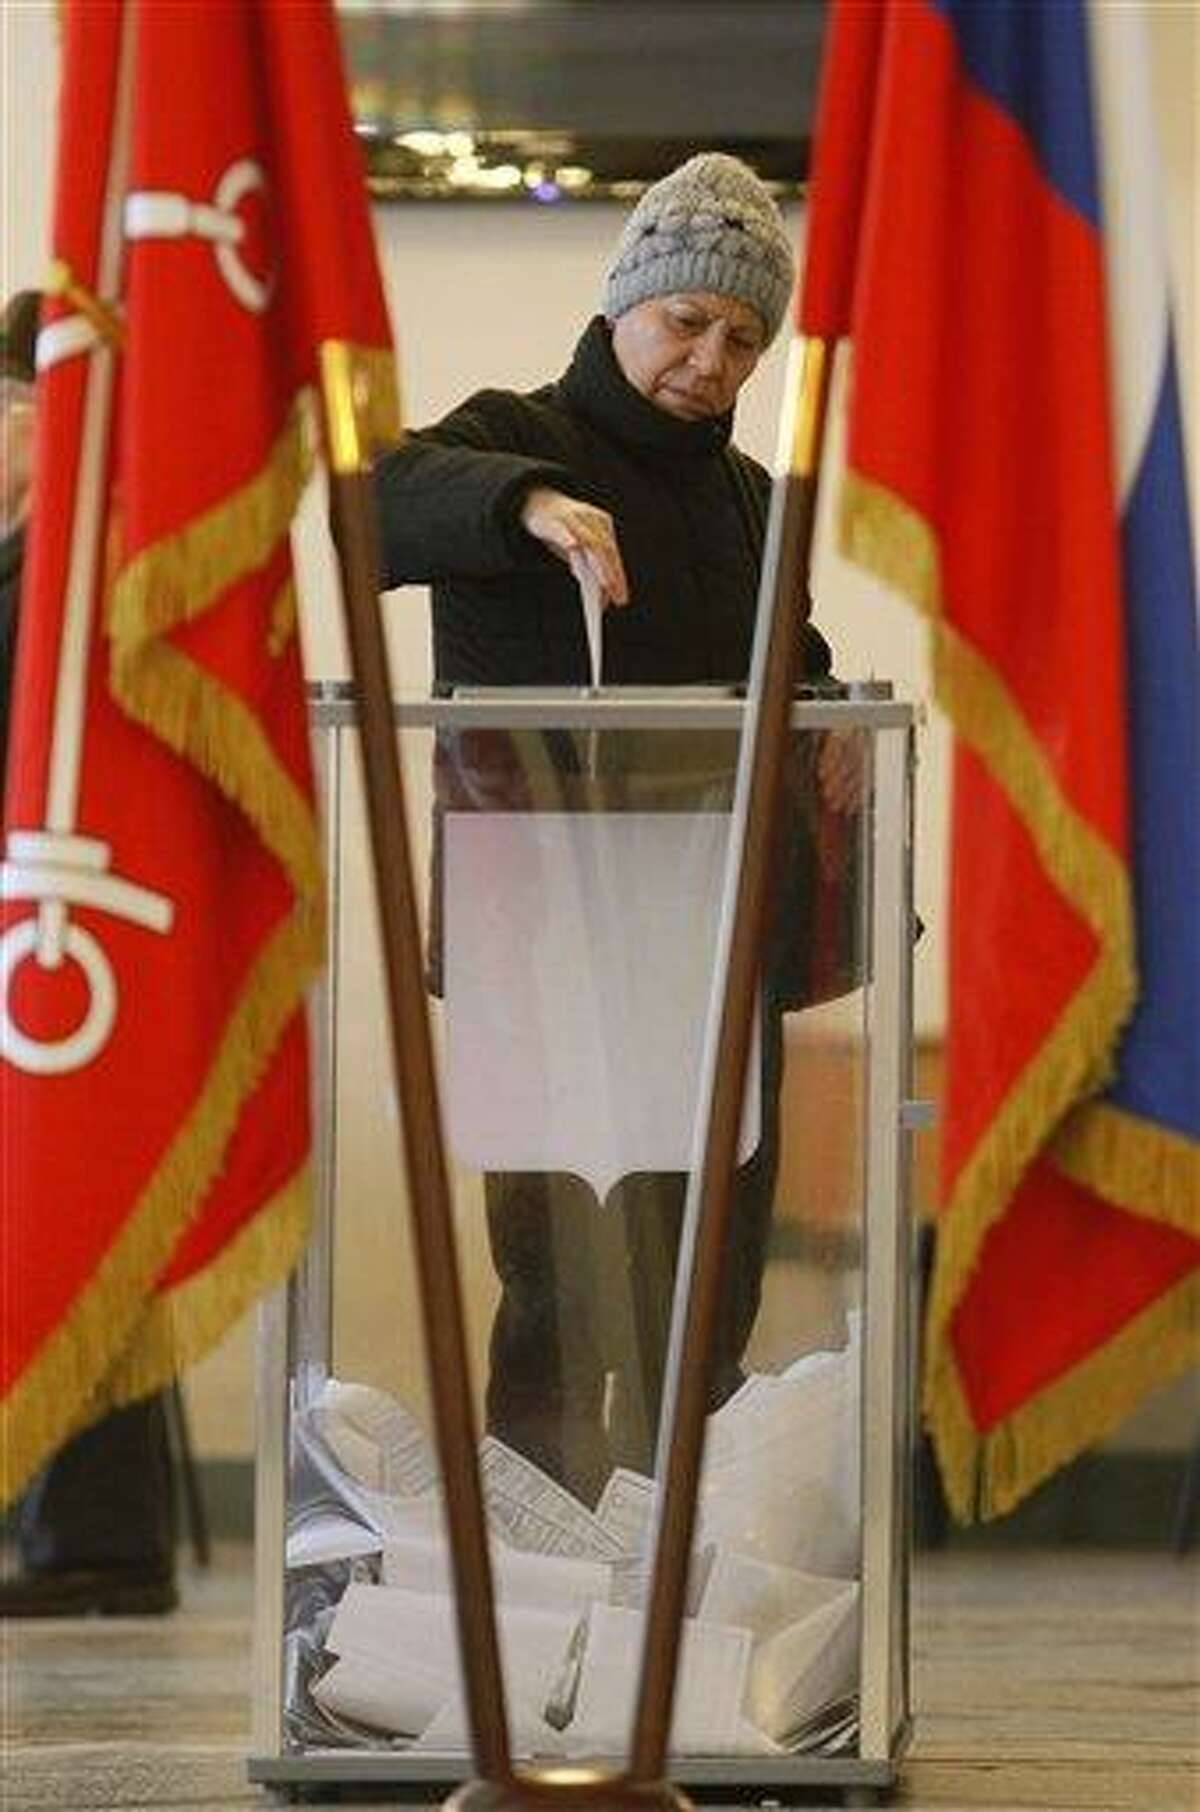 A woman casts her ballot at a polling station during presidential elections in St. Petersburg, Russia, Sunday. Polling stations have opened across Russia's vast expanse for the presidential election widely expected to return Vladimir Putin to the Kremlin. Associated Press